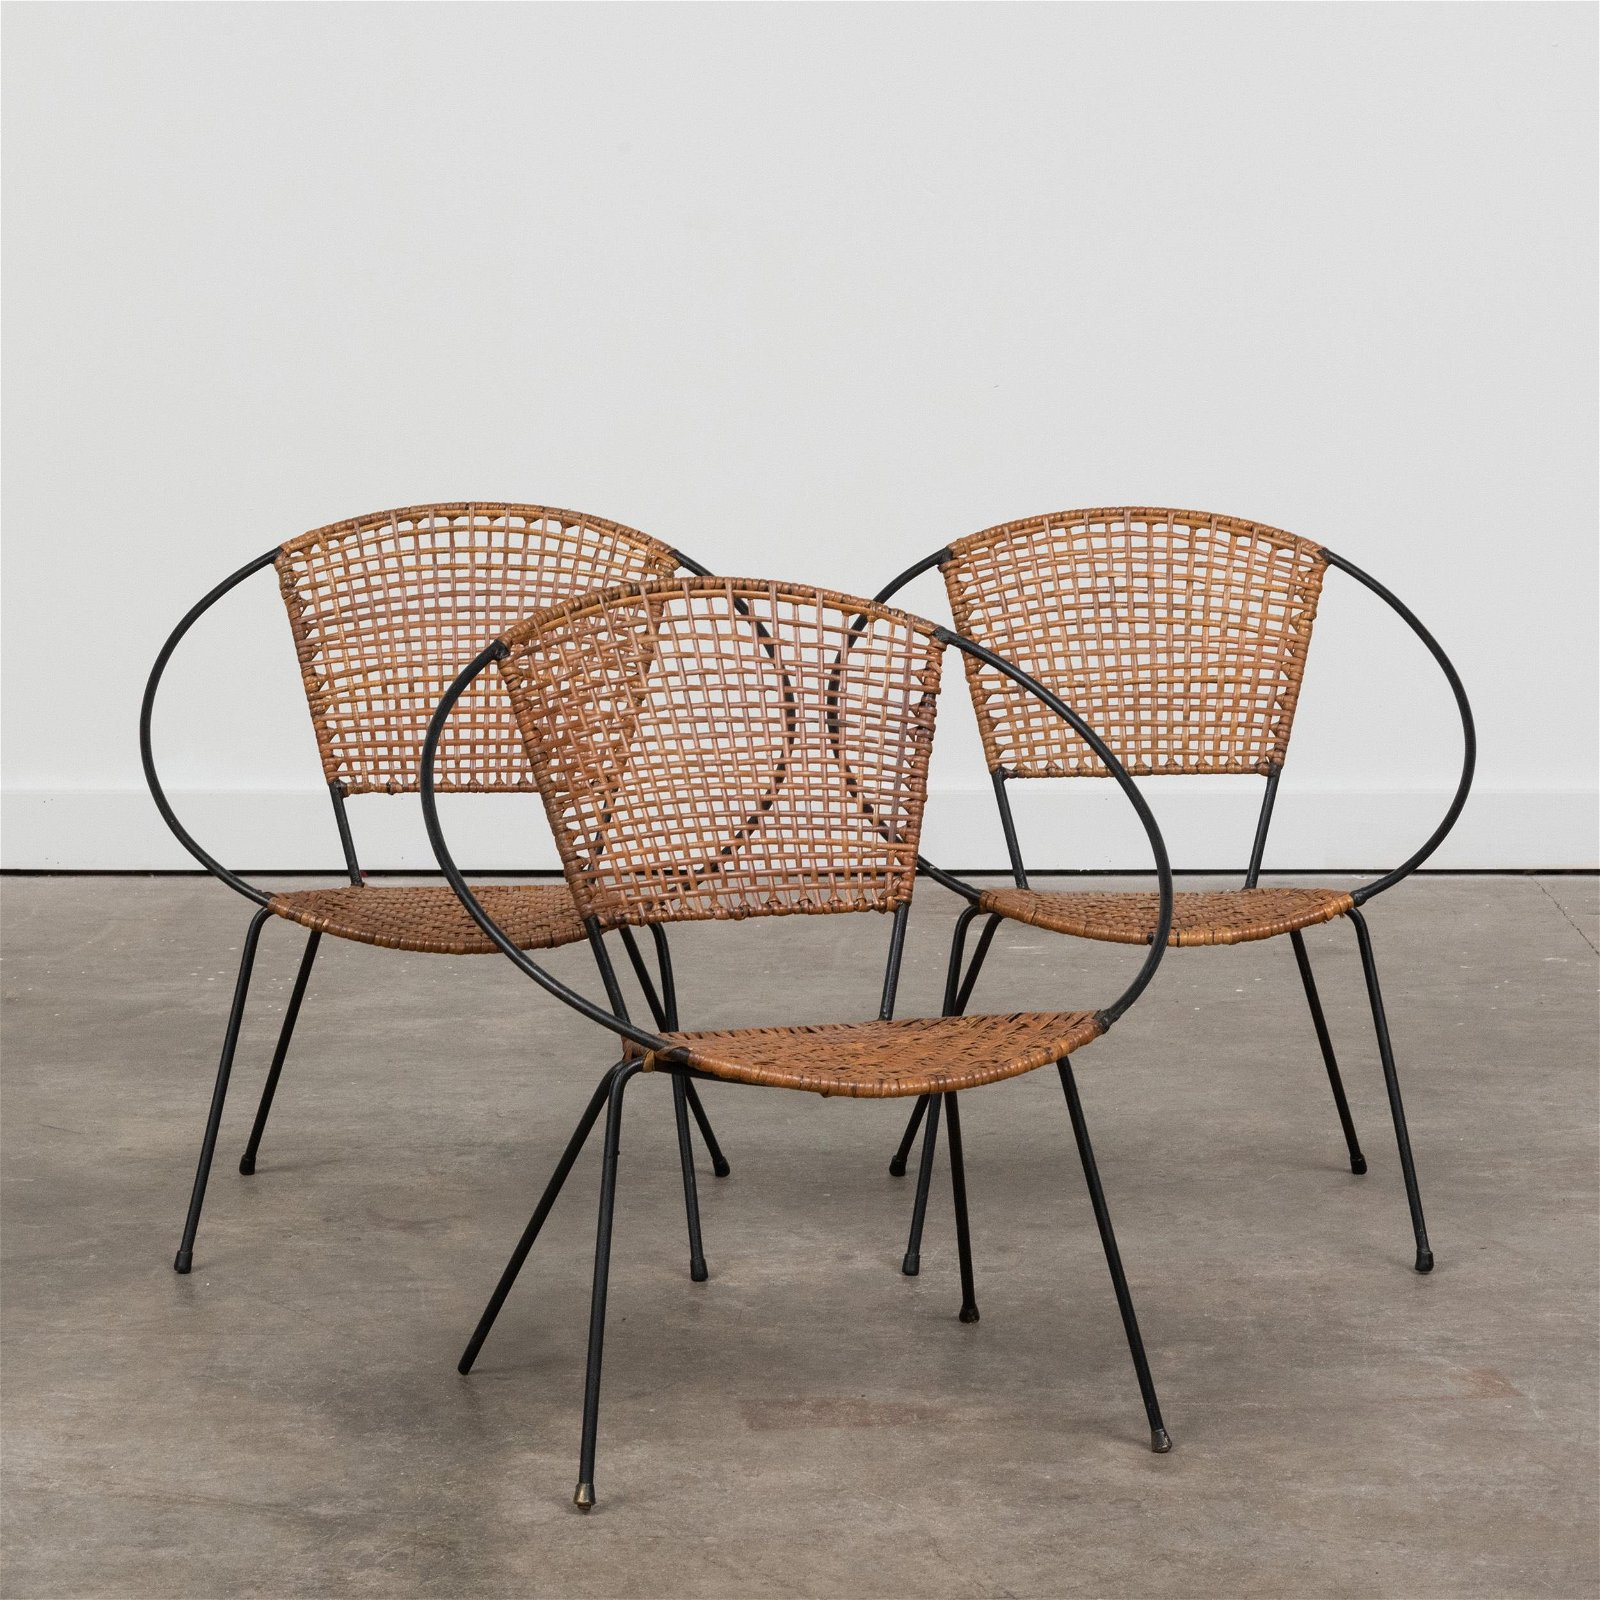 Set of Three Modern Iron and Wicker Child's Chairs